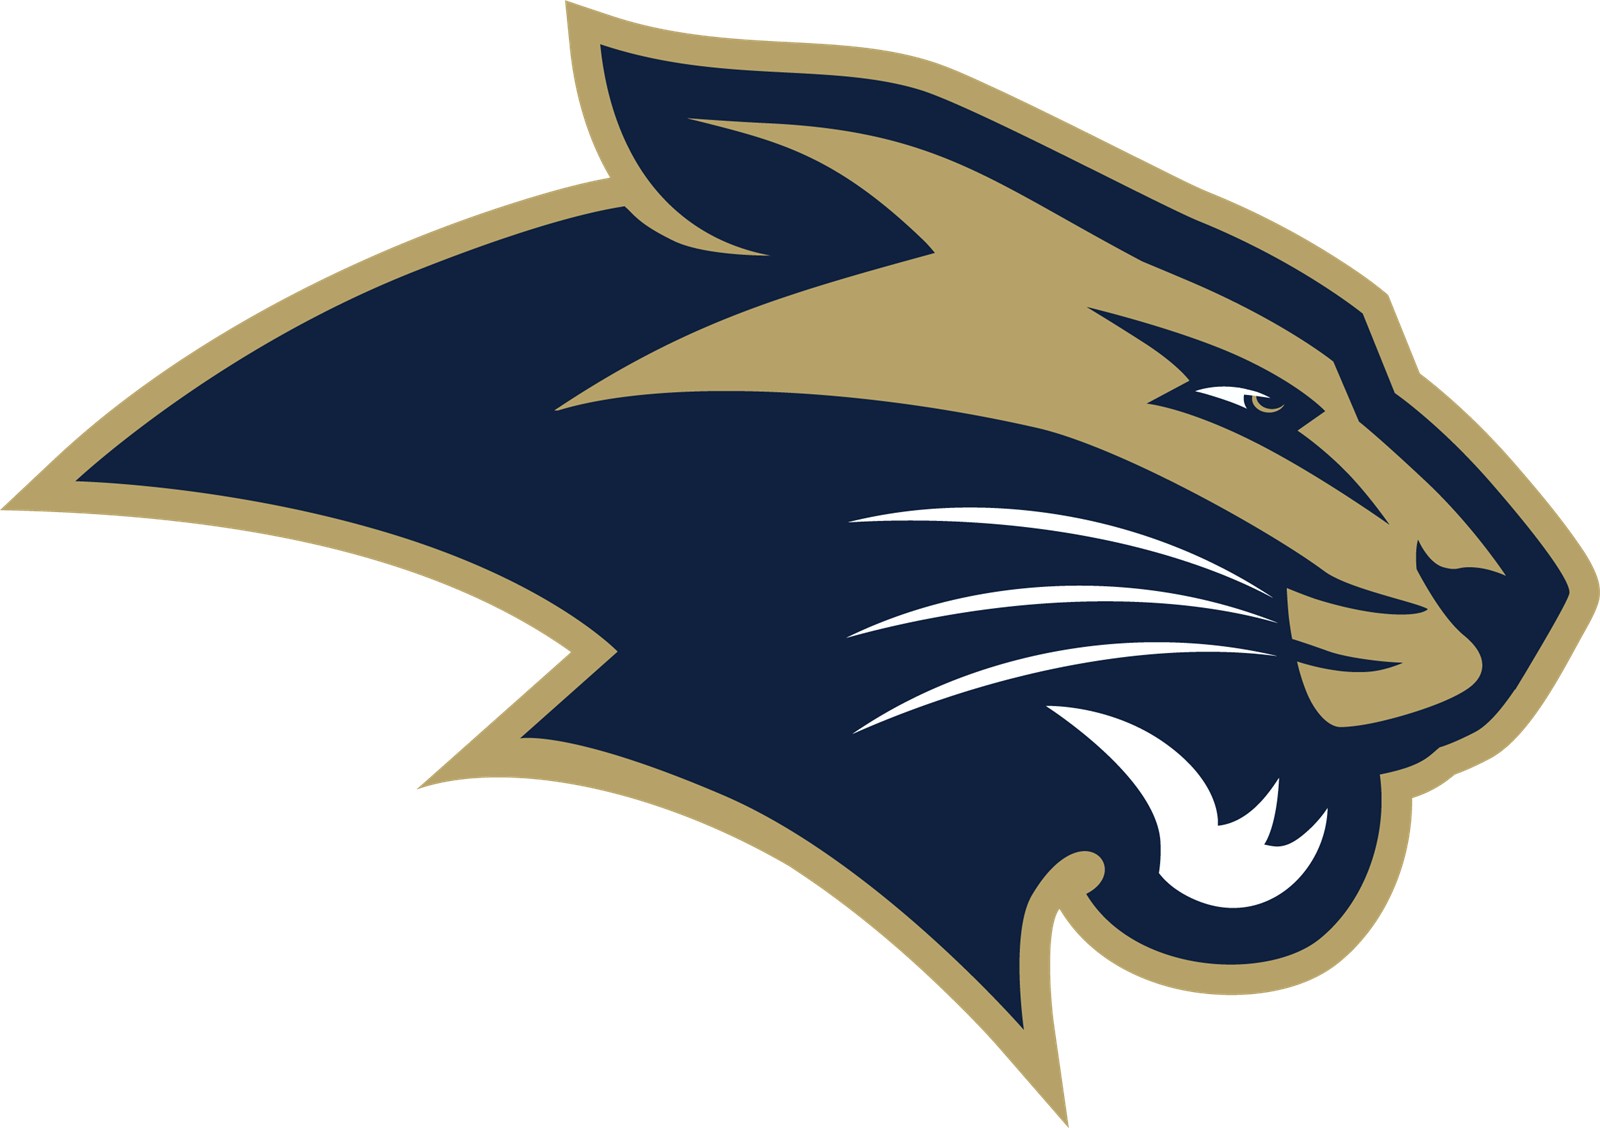 Panther logo with the school colors navy and gold